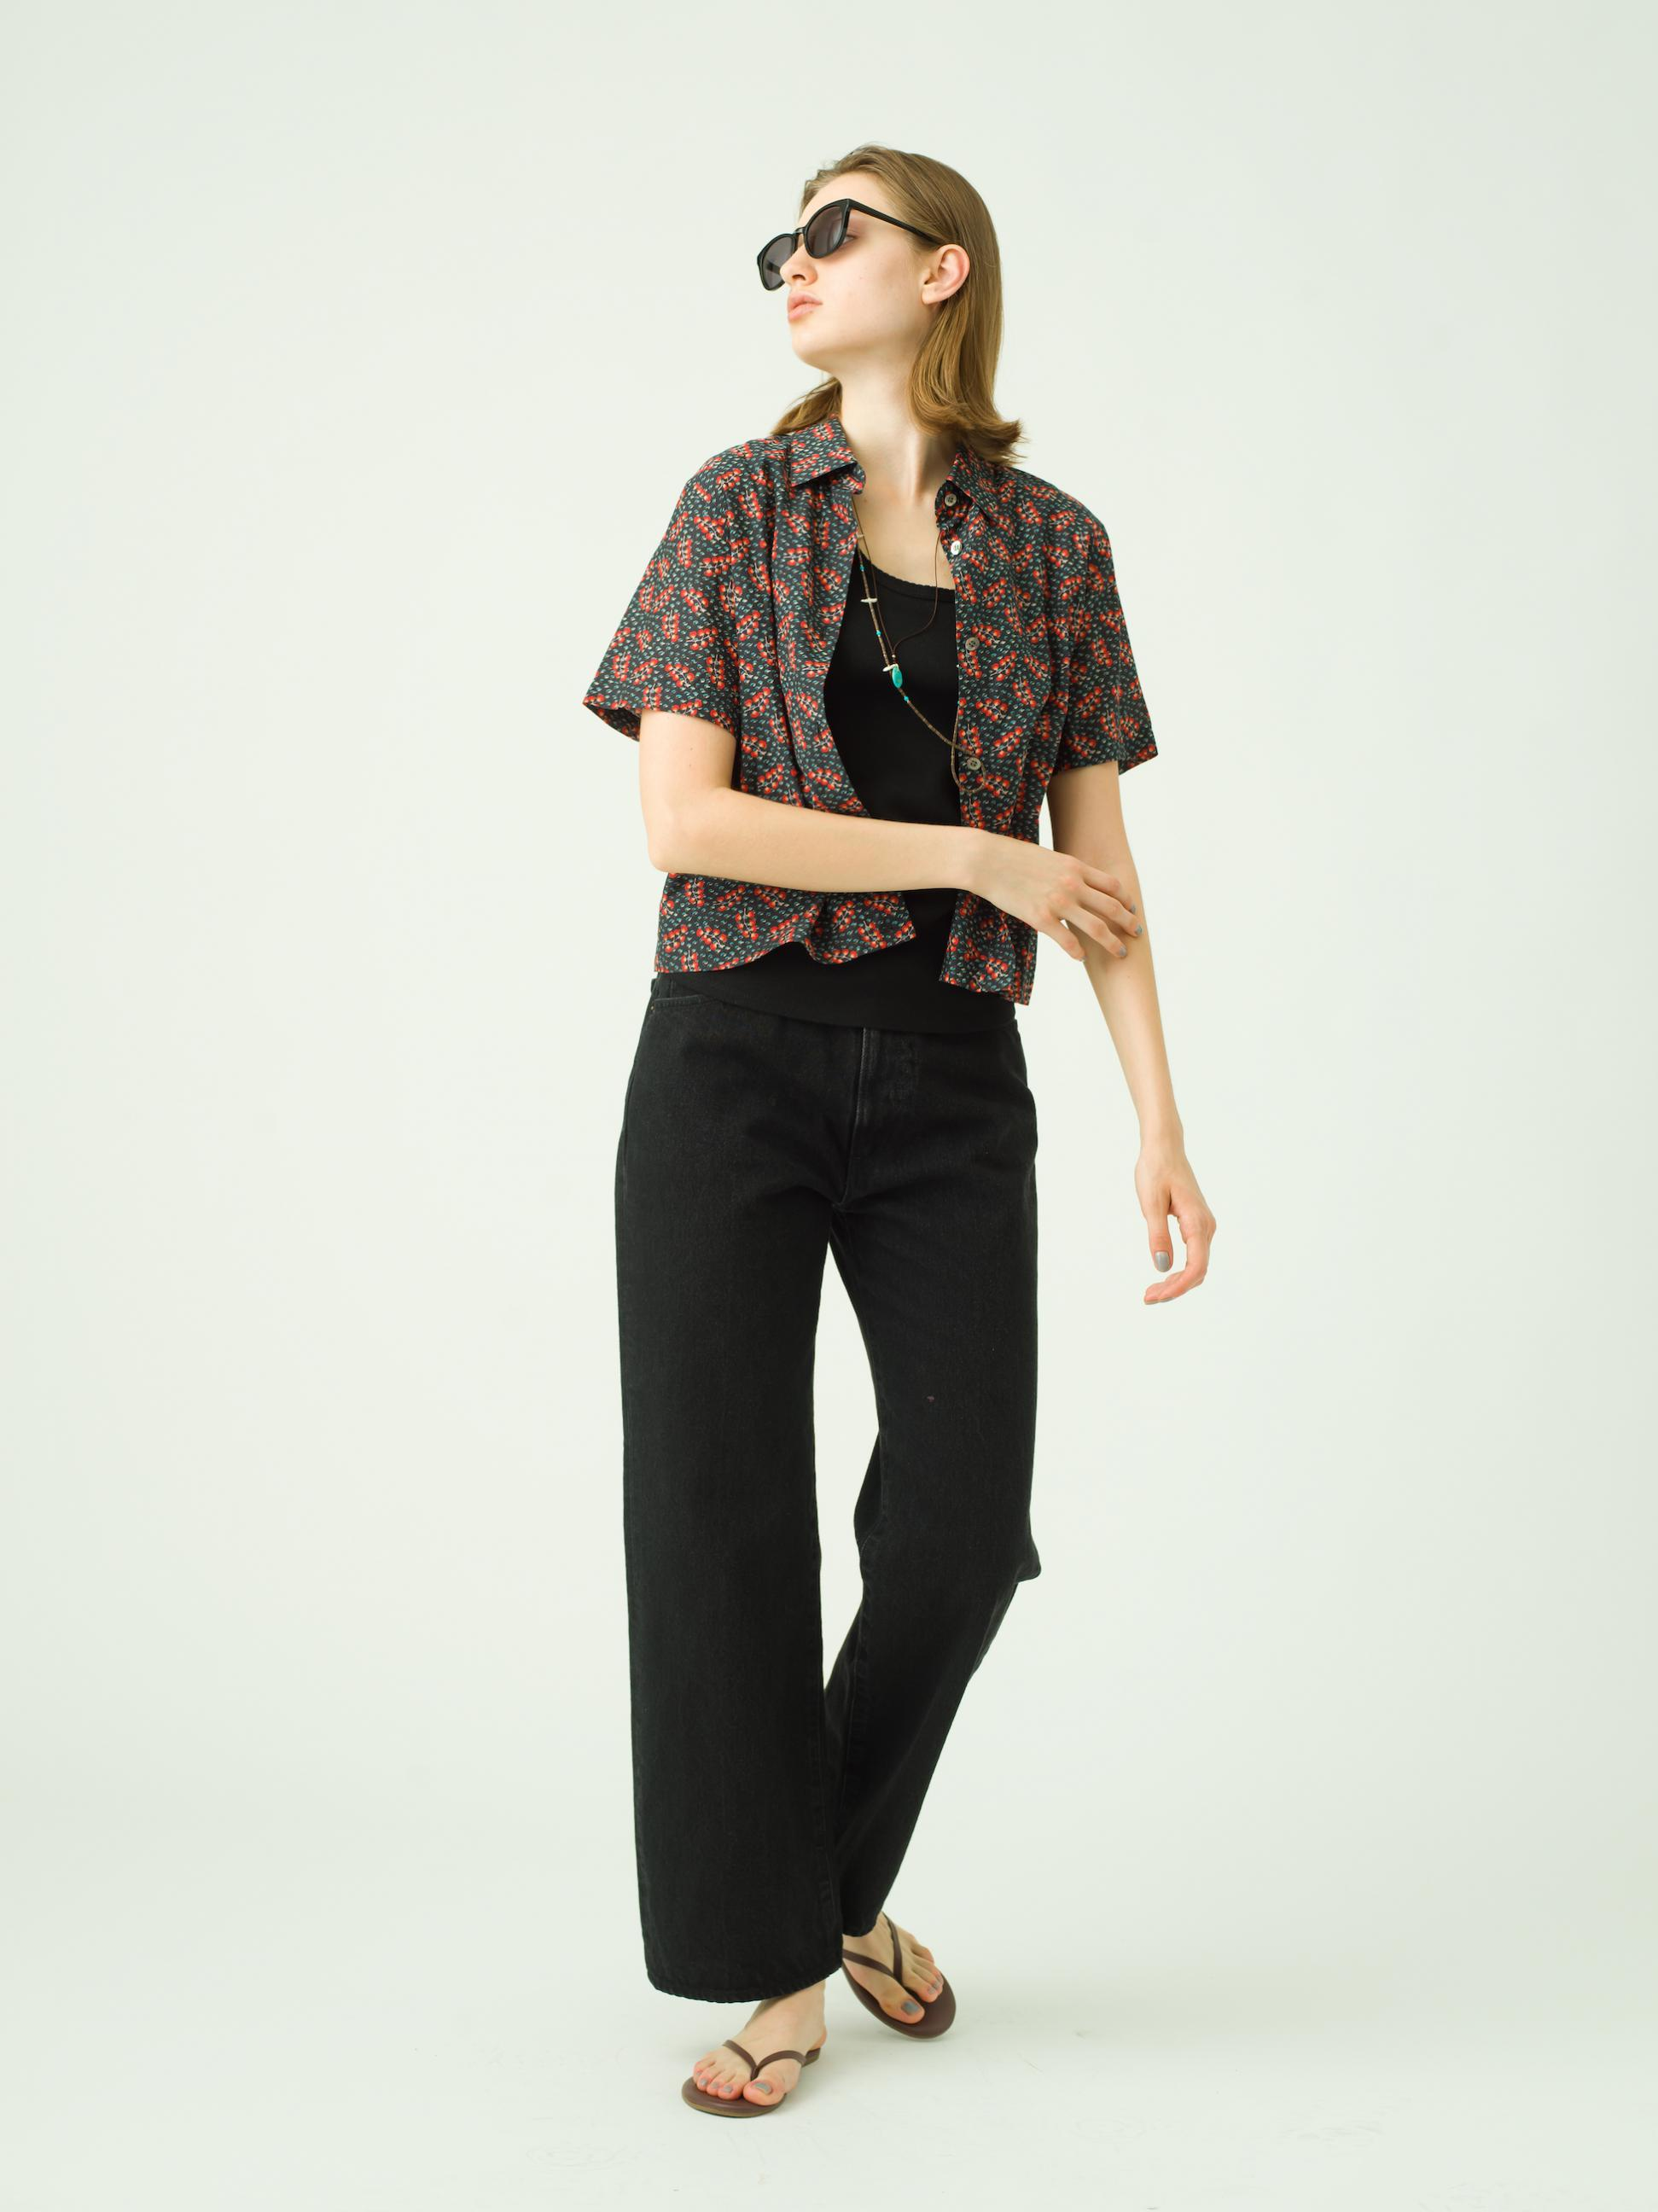 4_2 shirt¥26,000  tops¥7,500  pants¥21,000  eyewear¥19,000  necklace¥120,000  necklace¥56,000  shoes¥10,000